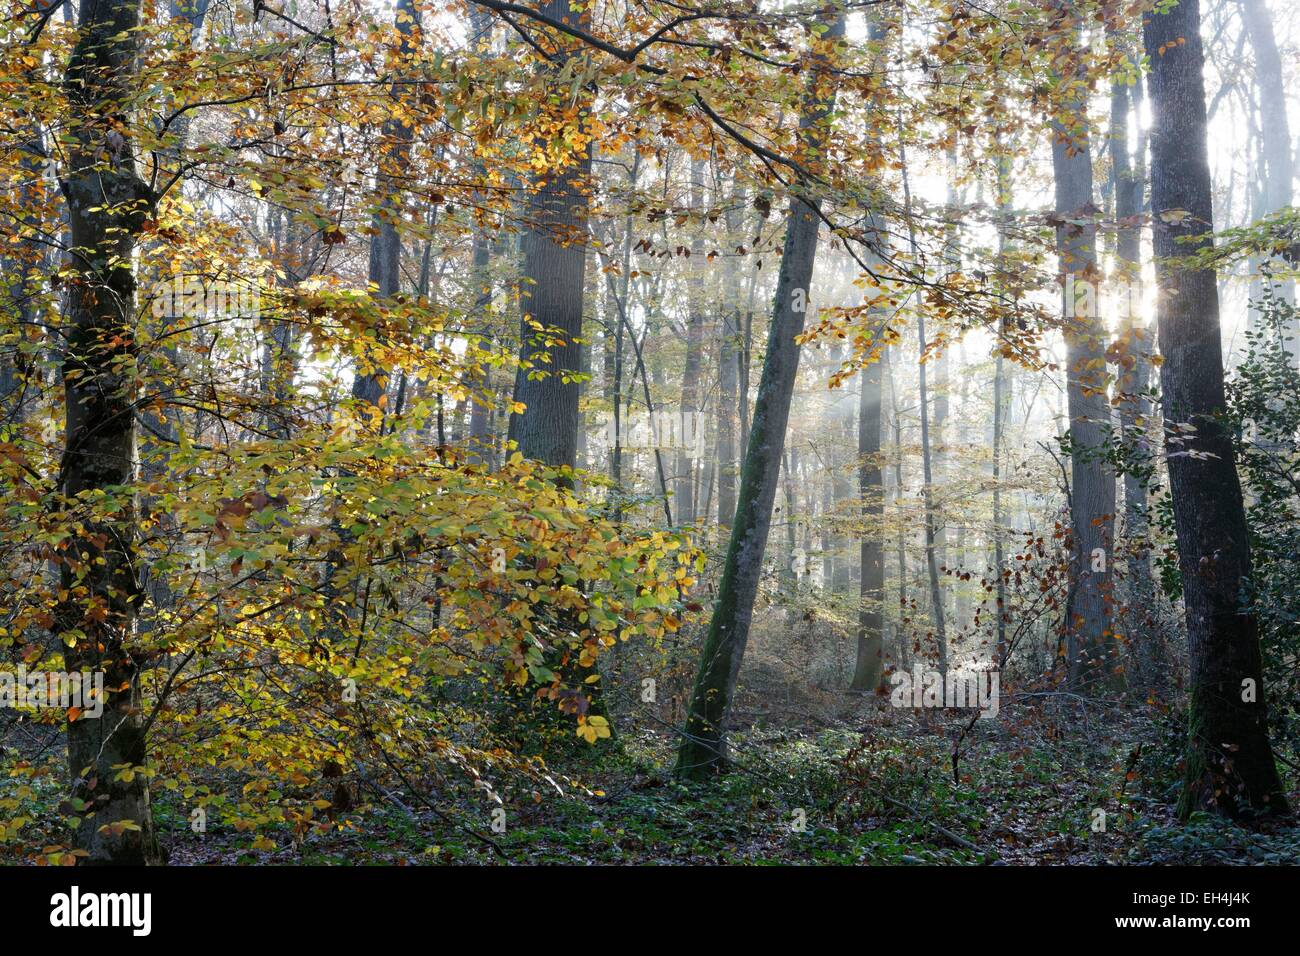 France, Allier, sessile oak forest (Quercus petraea), national forest of Moladiers, near Moulins, Bourbonnais - Stock Image